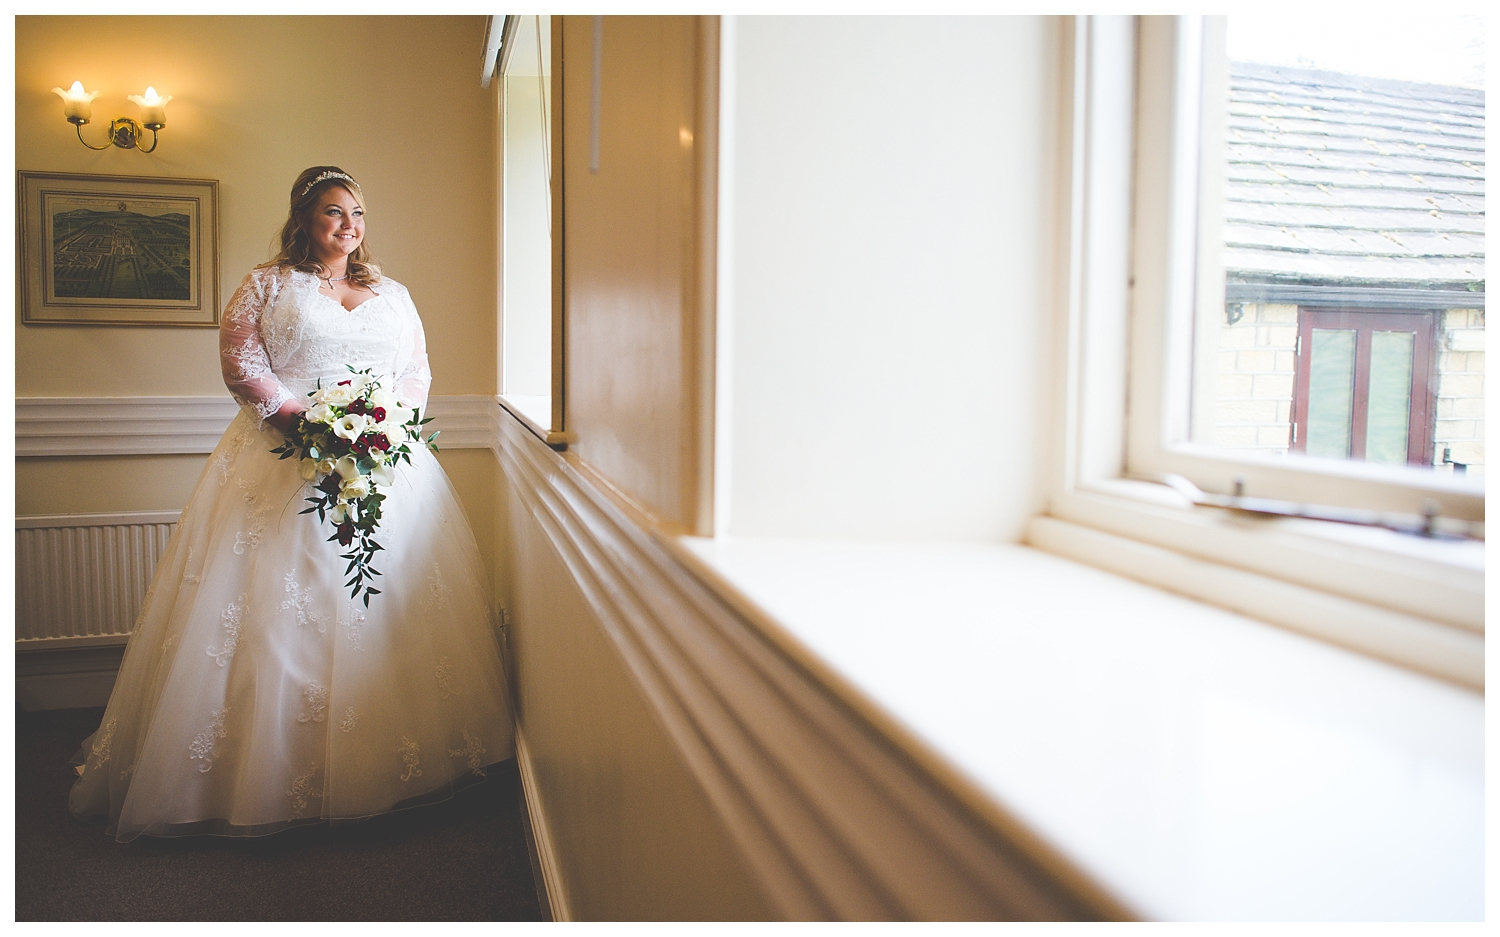 Bagden-Hall-hotel-Wedding-Photography_0016